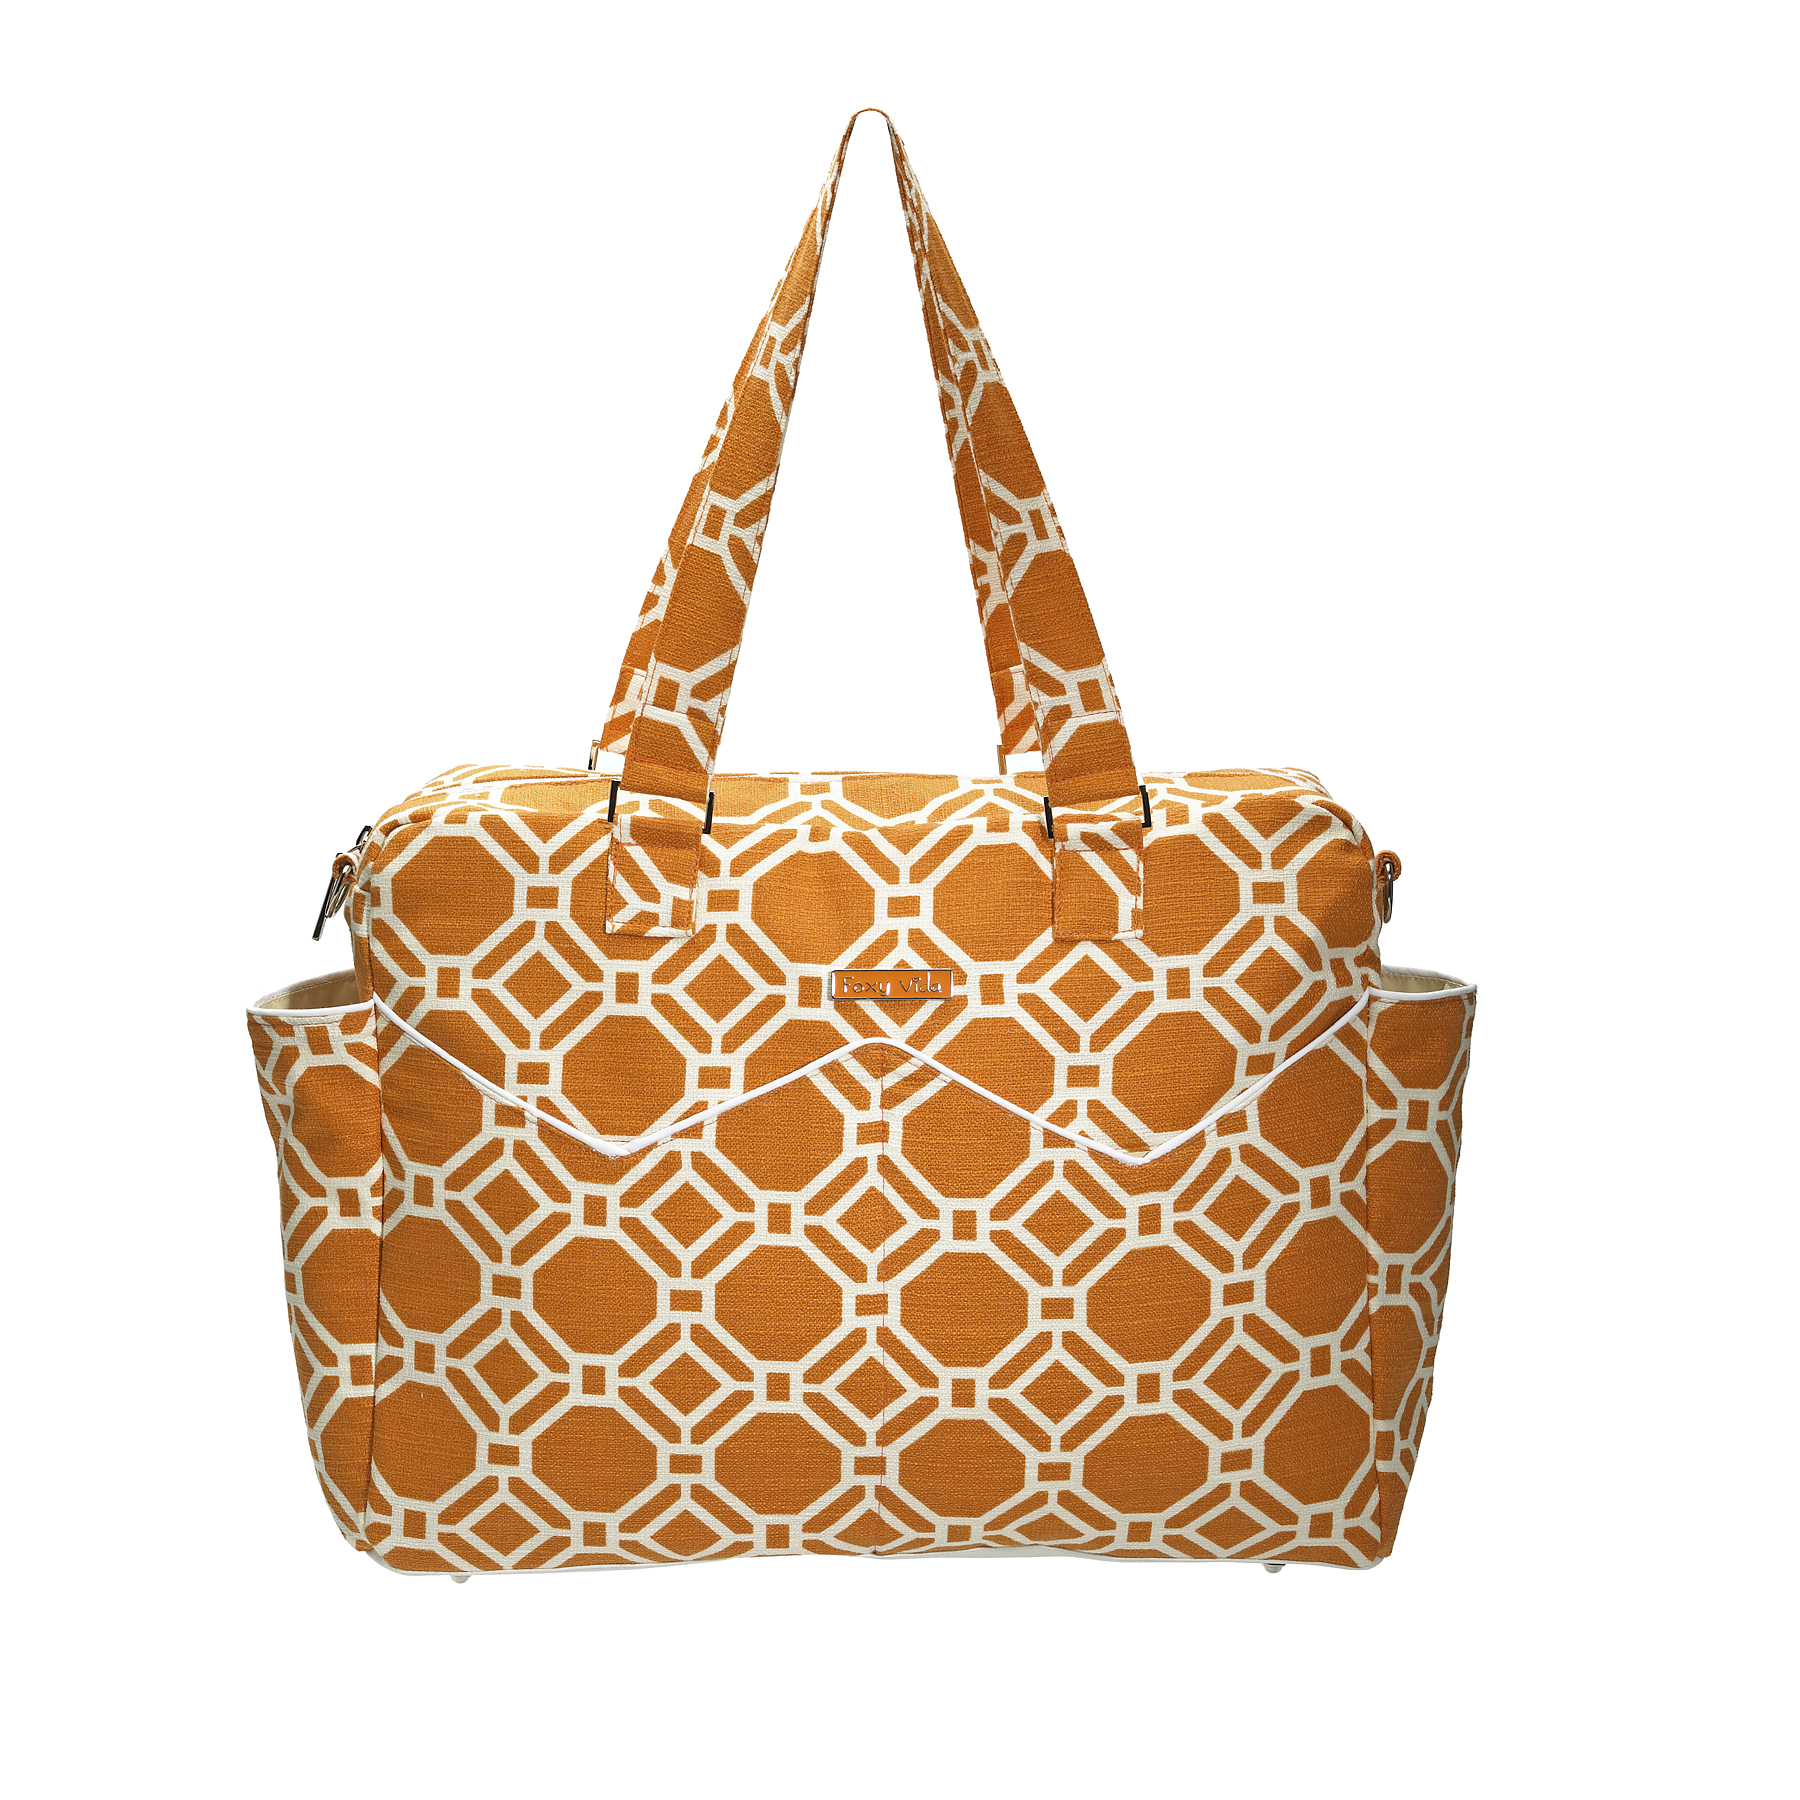 VIDA Tote Bag - Cleansed Tote by VIDA nXuwB